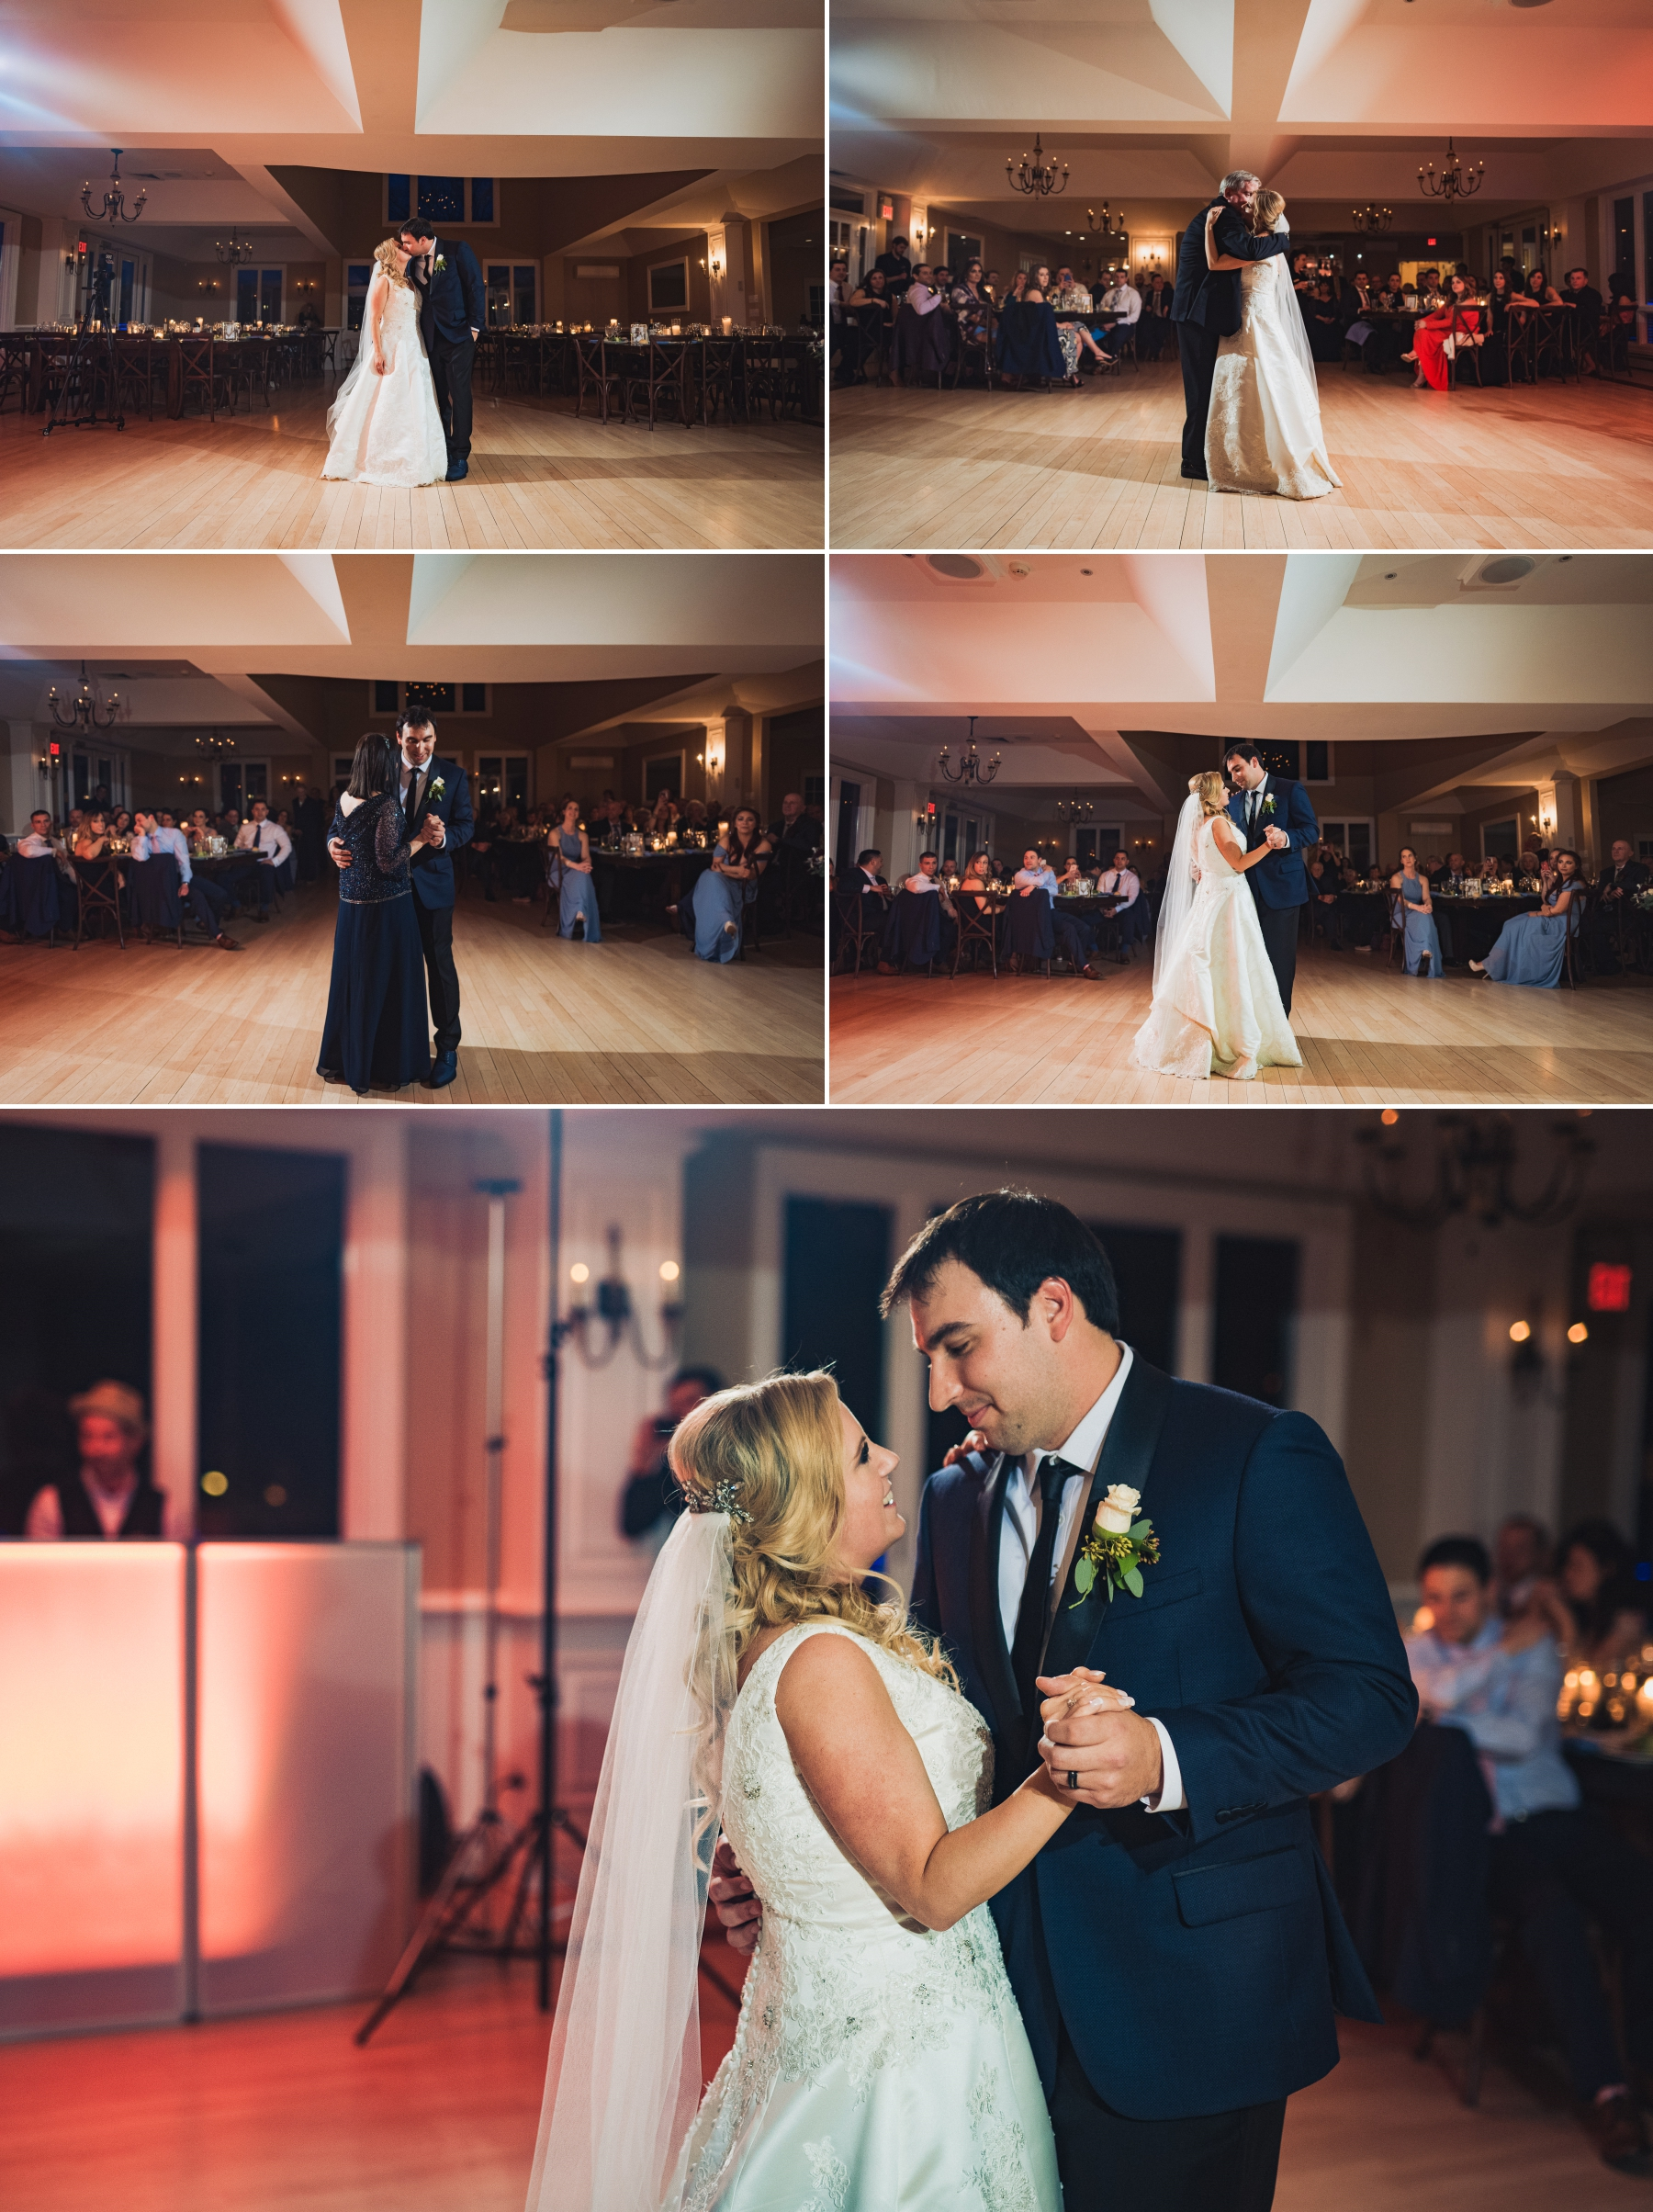 First dances, with Tara and Zach, as well as their parents.